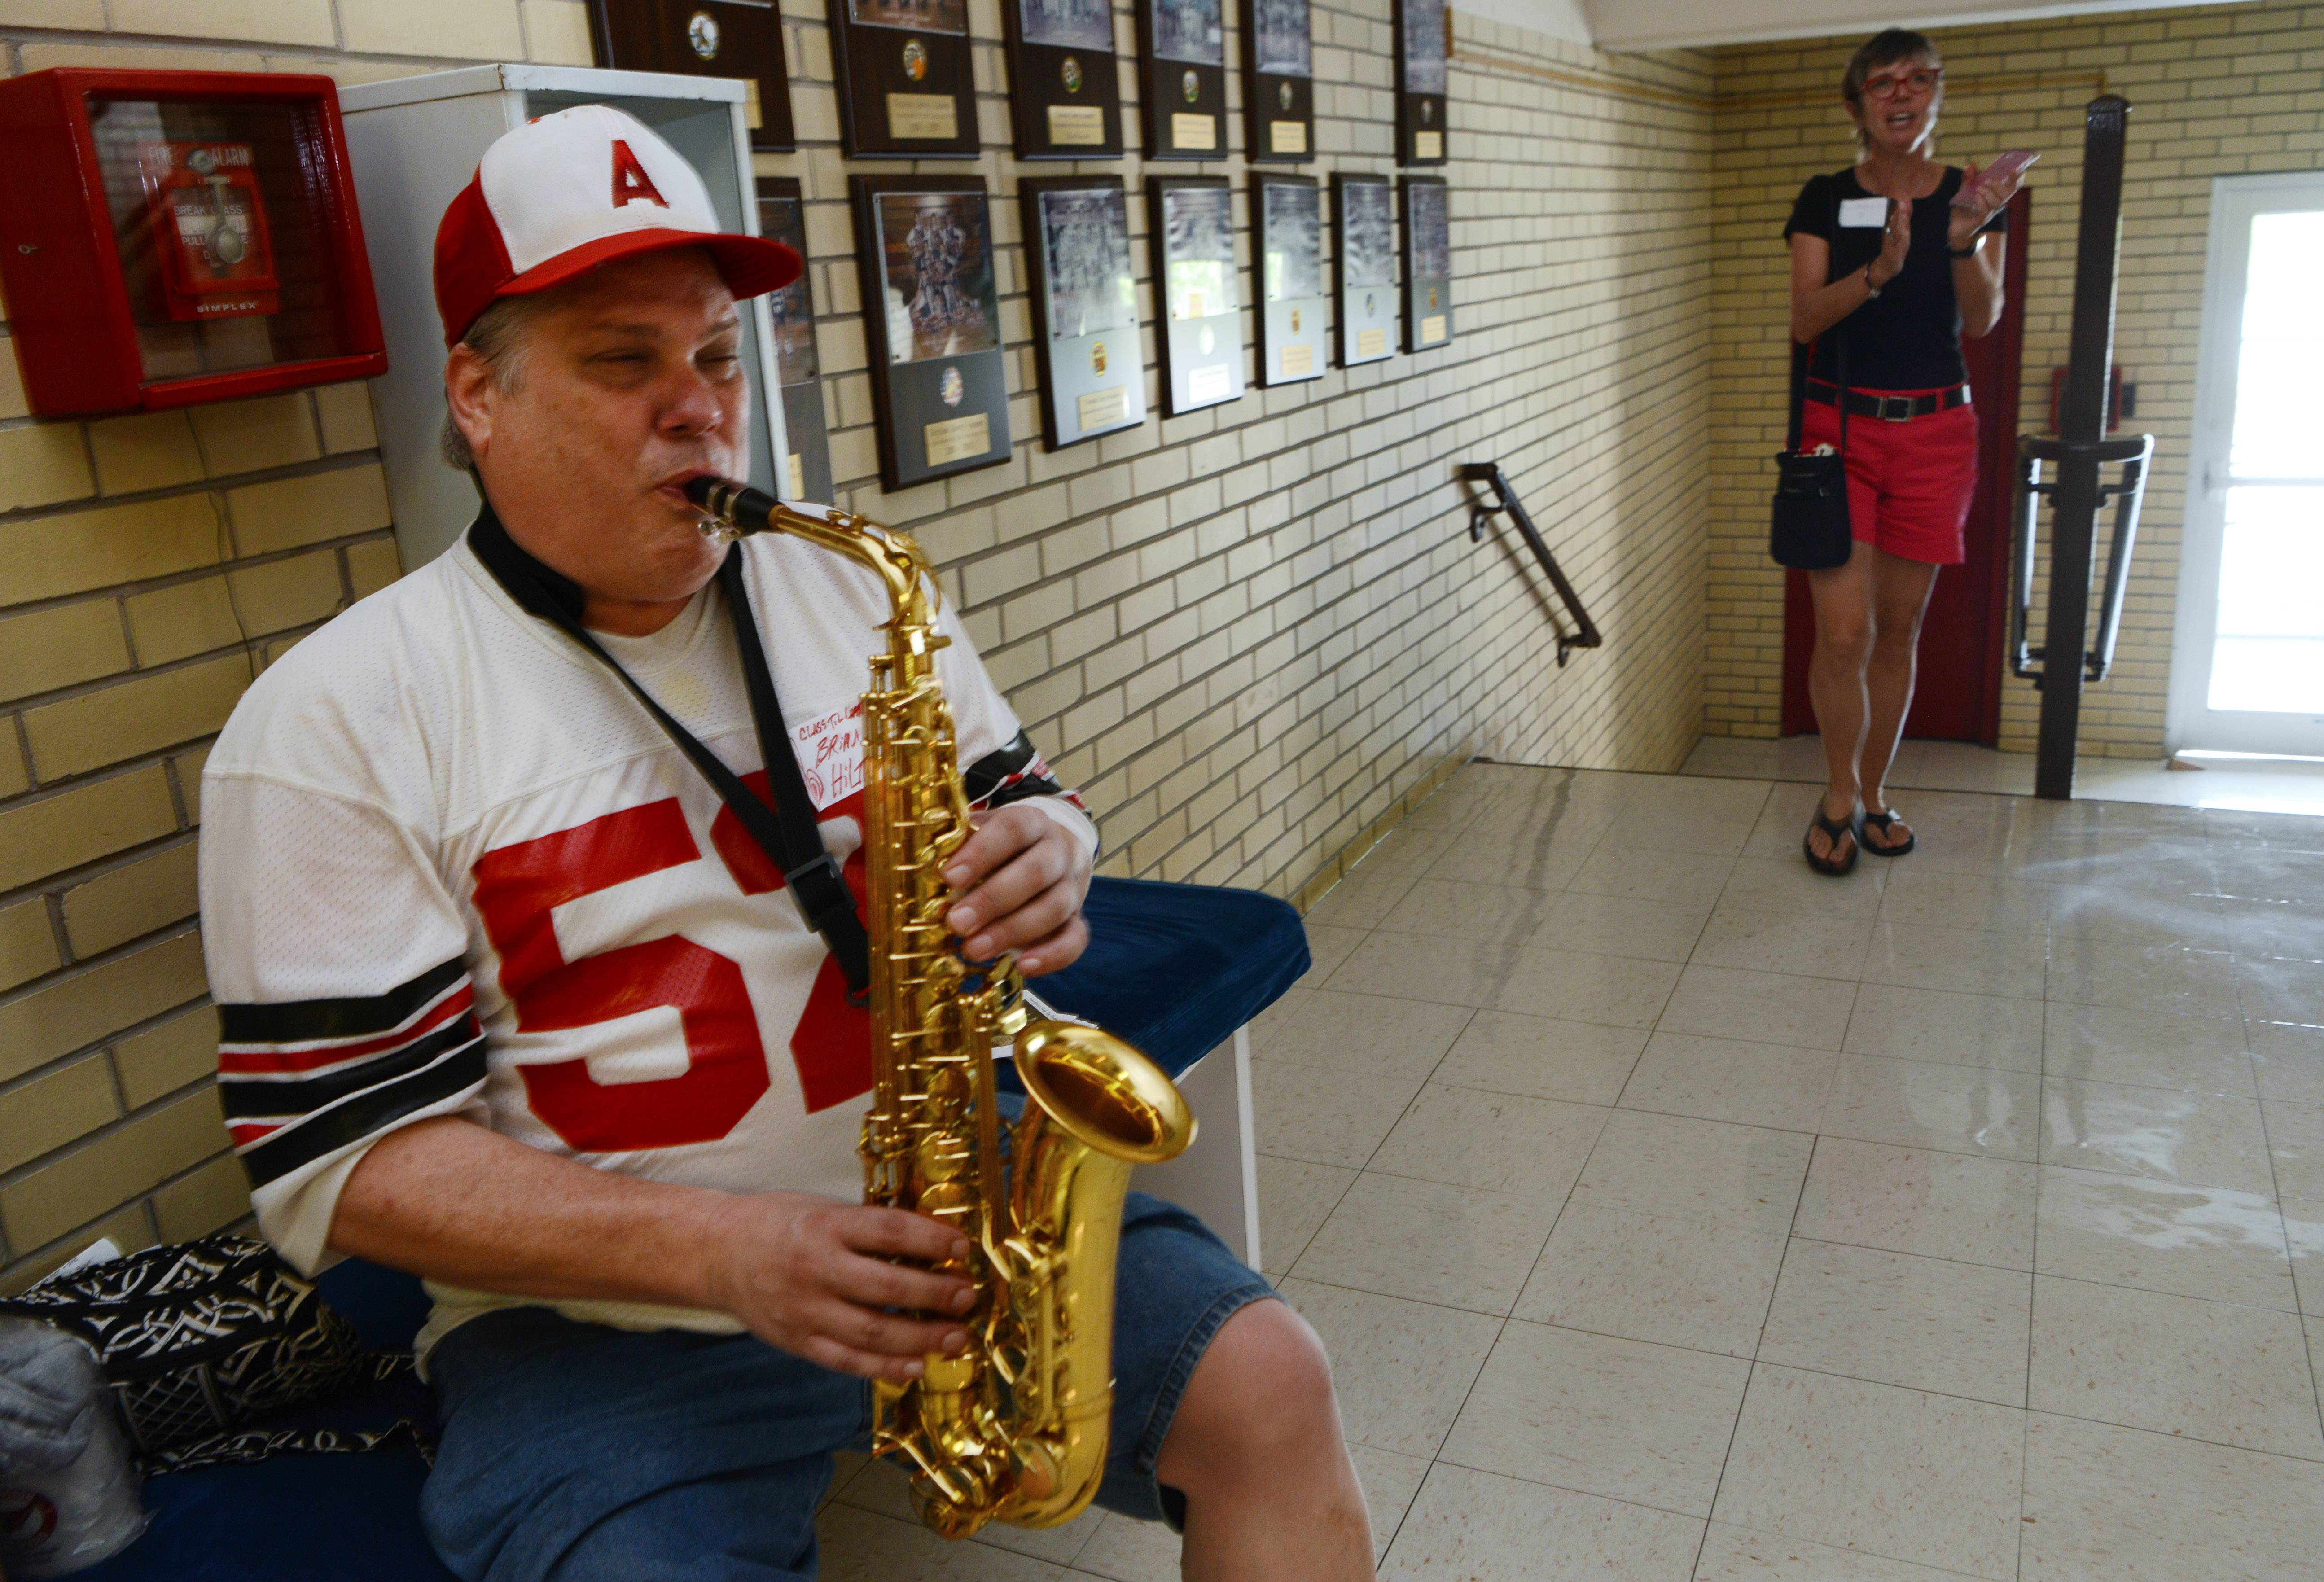 Brian Hilton, a member of the final graduating class of 1984, plays the school song on saxophone during the Arlington High School all-class homecoming, held at the former school building, which is now Christian Liberty Academy, in Arlington Heights Saturday.